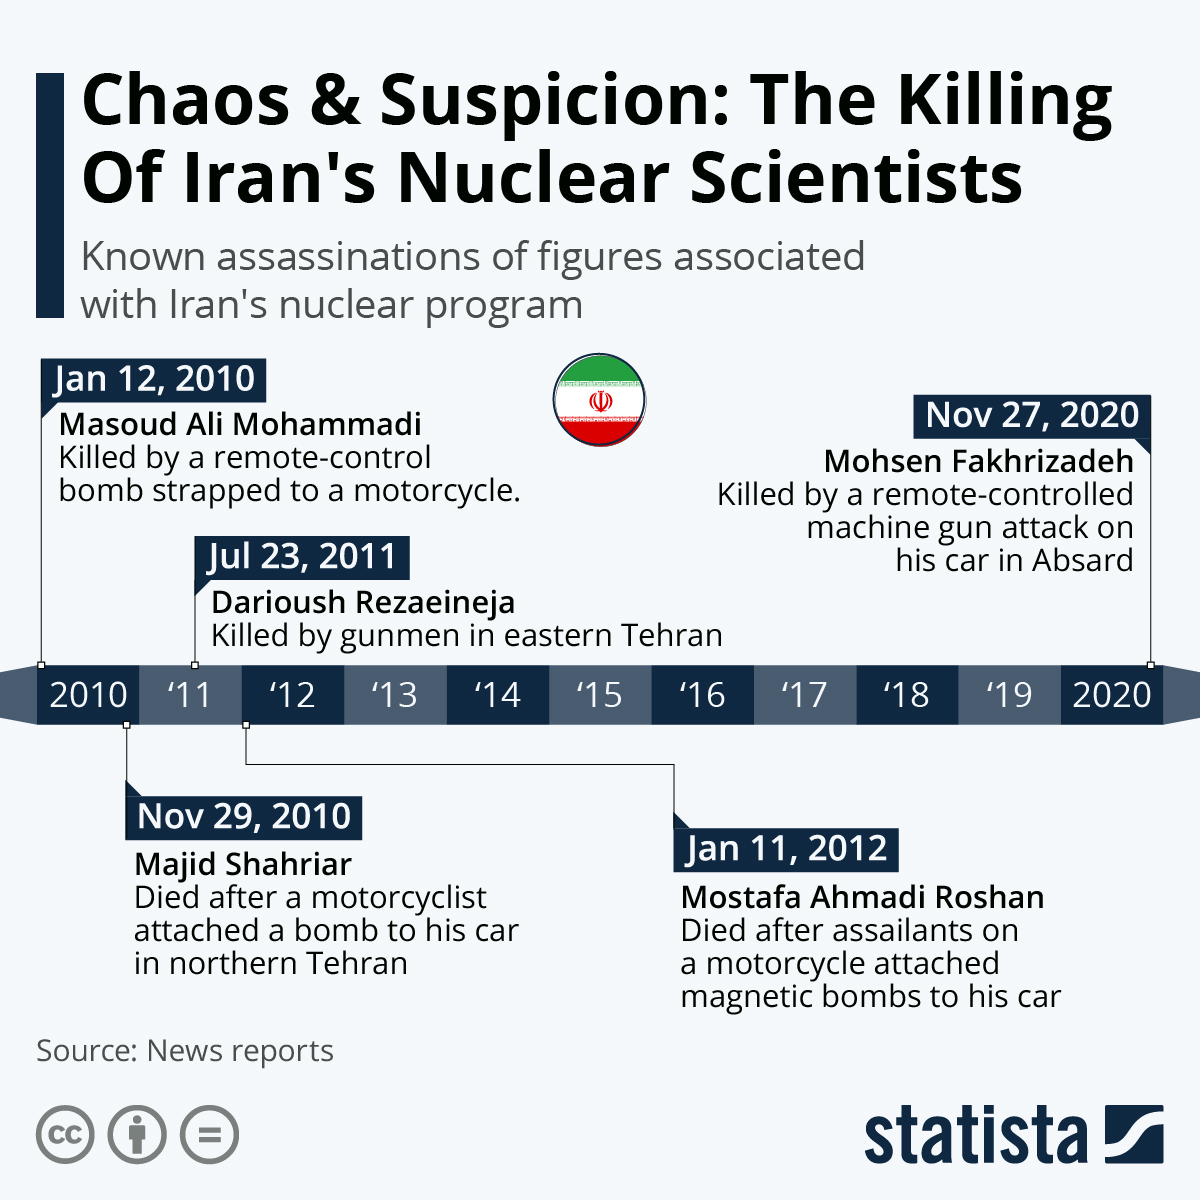 Chaos & Suspicion: The Killing Of Iran's Nuclear Scientists